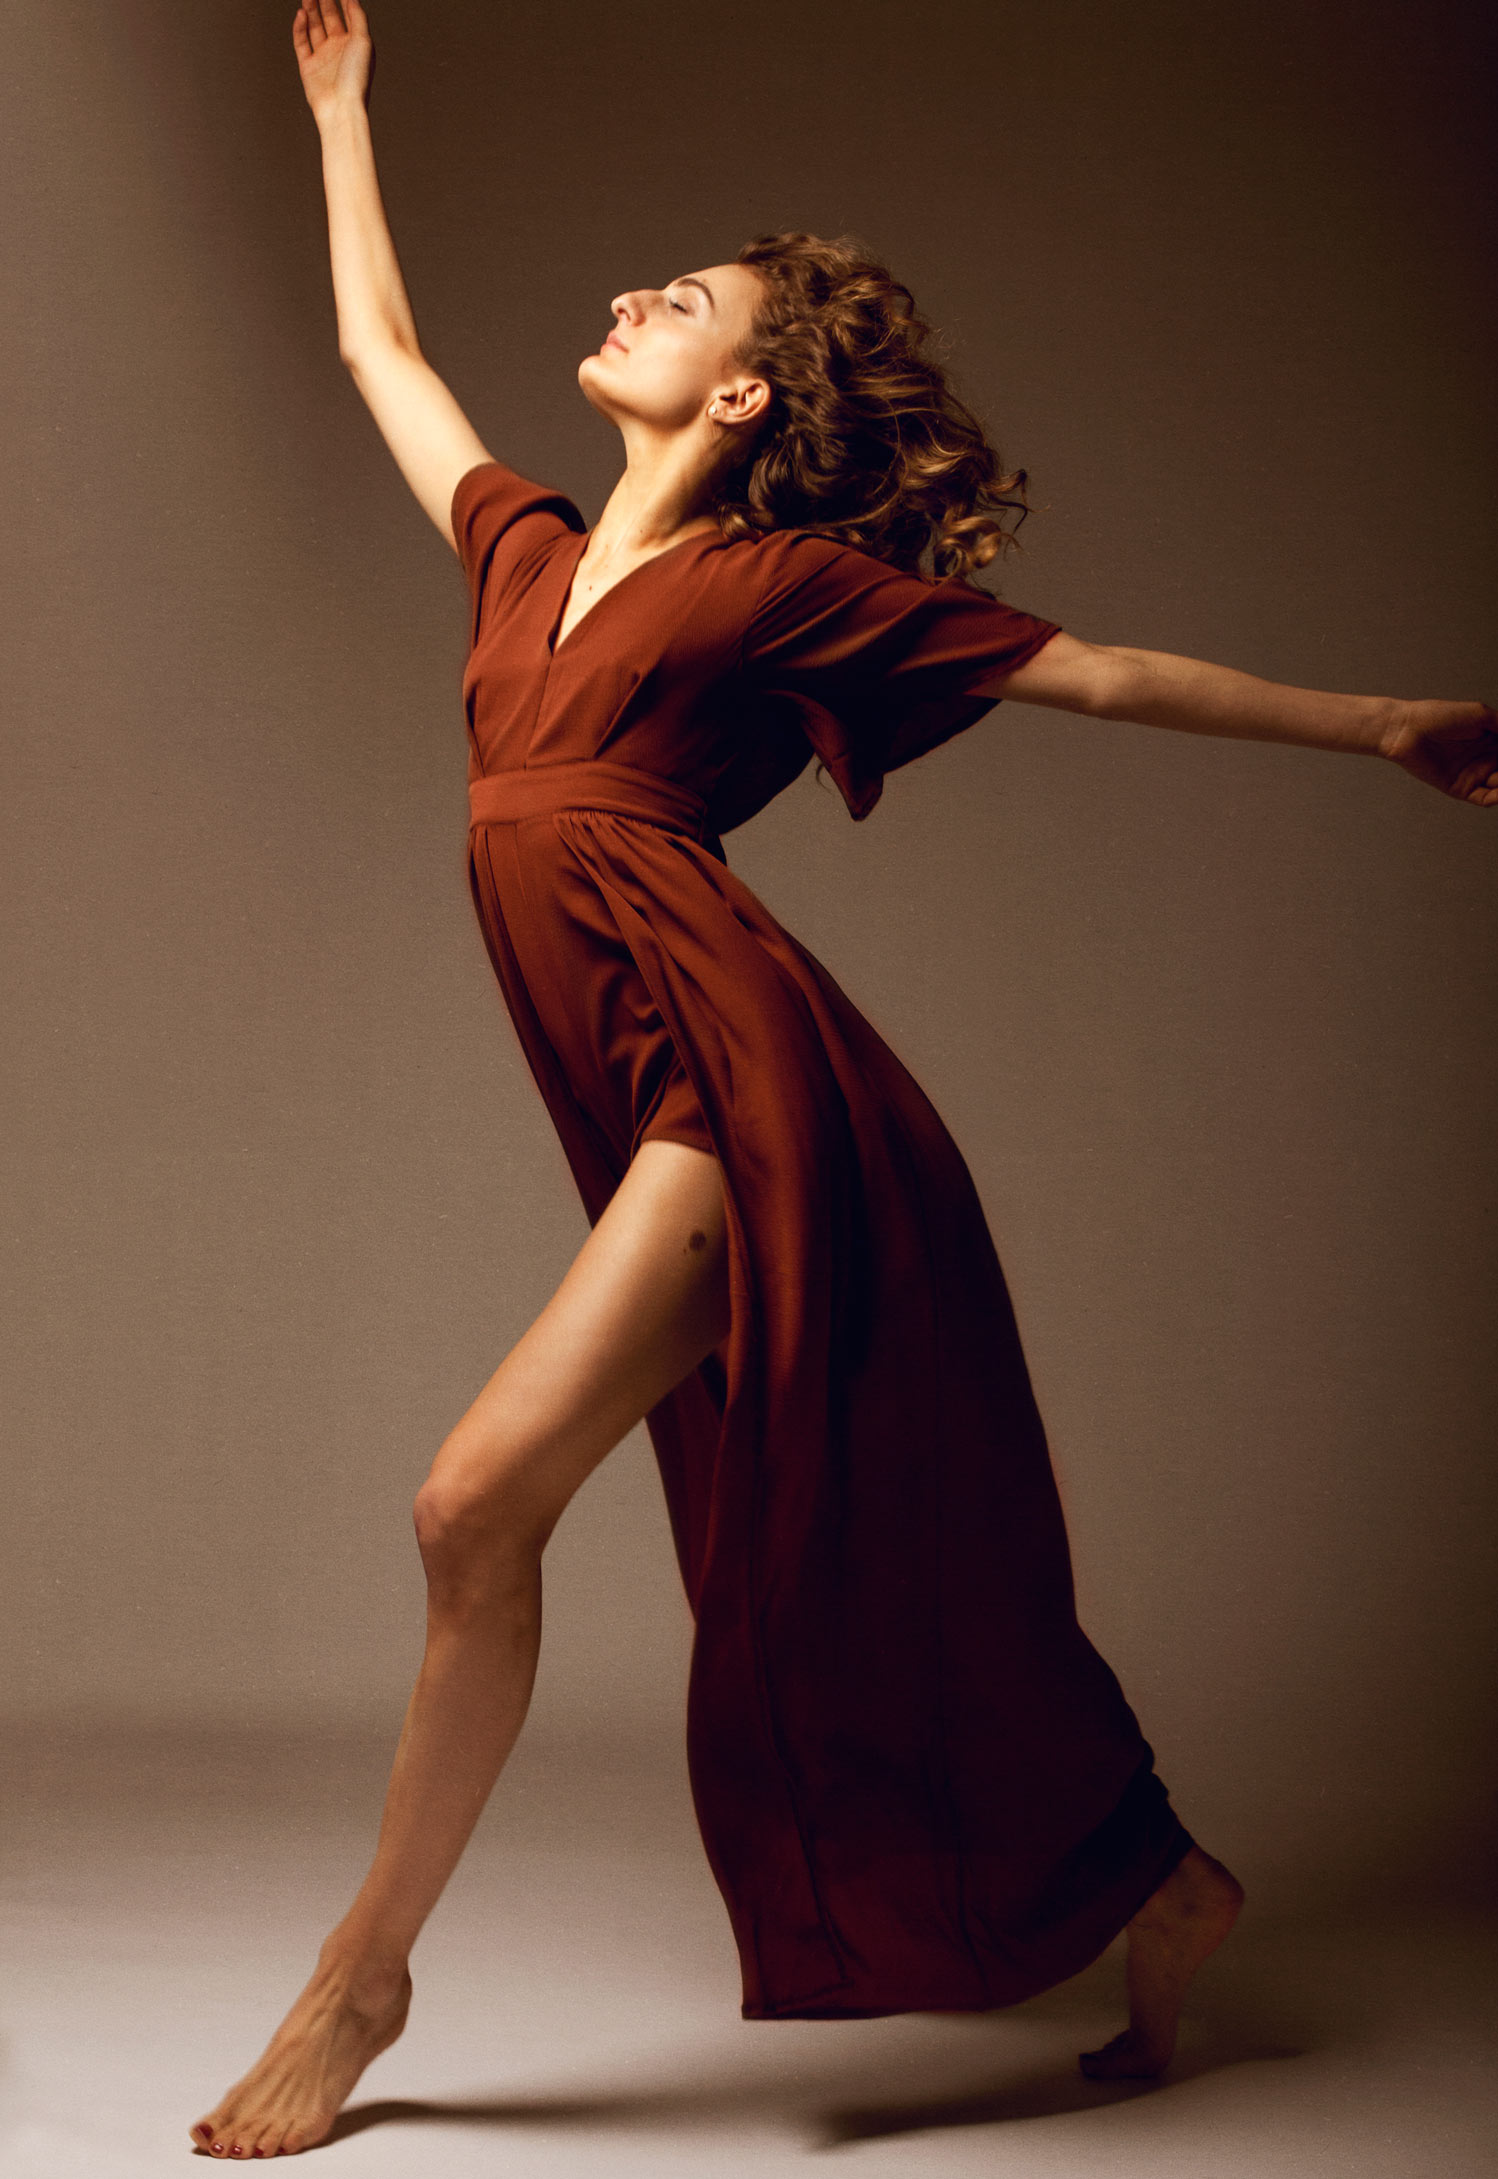 Full-length studio photography of gabriella papadakis dancing in a wispy dress